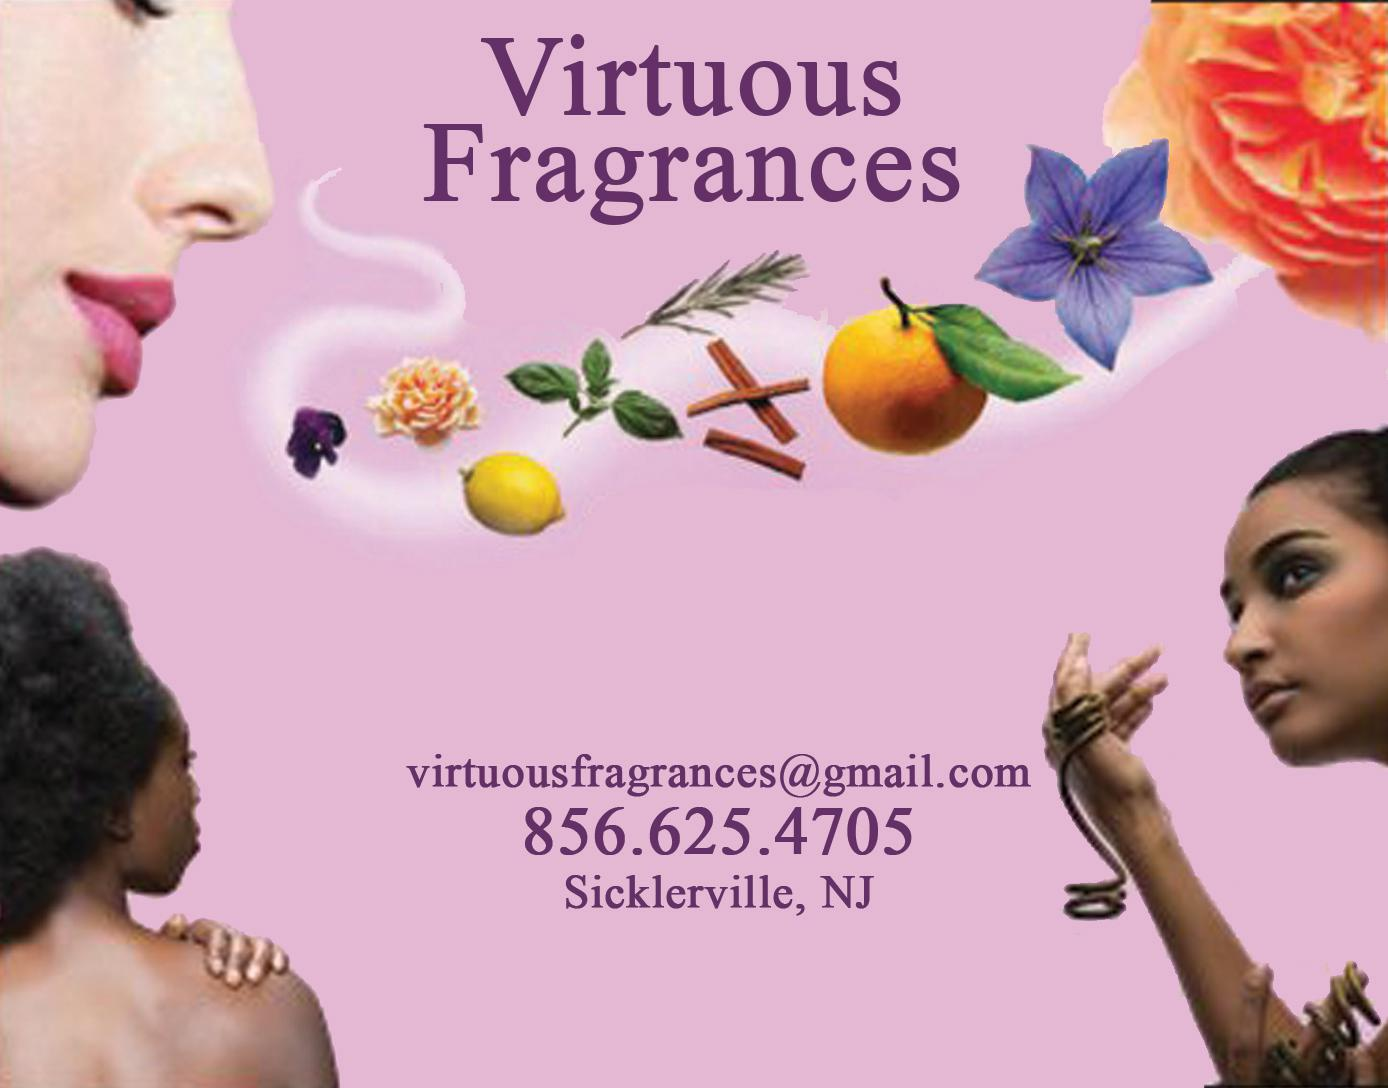 Virtuous Fragrances